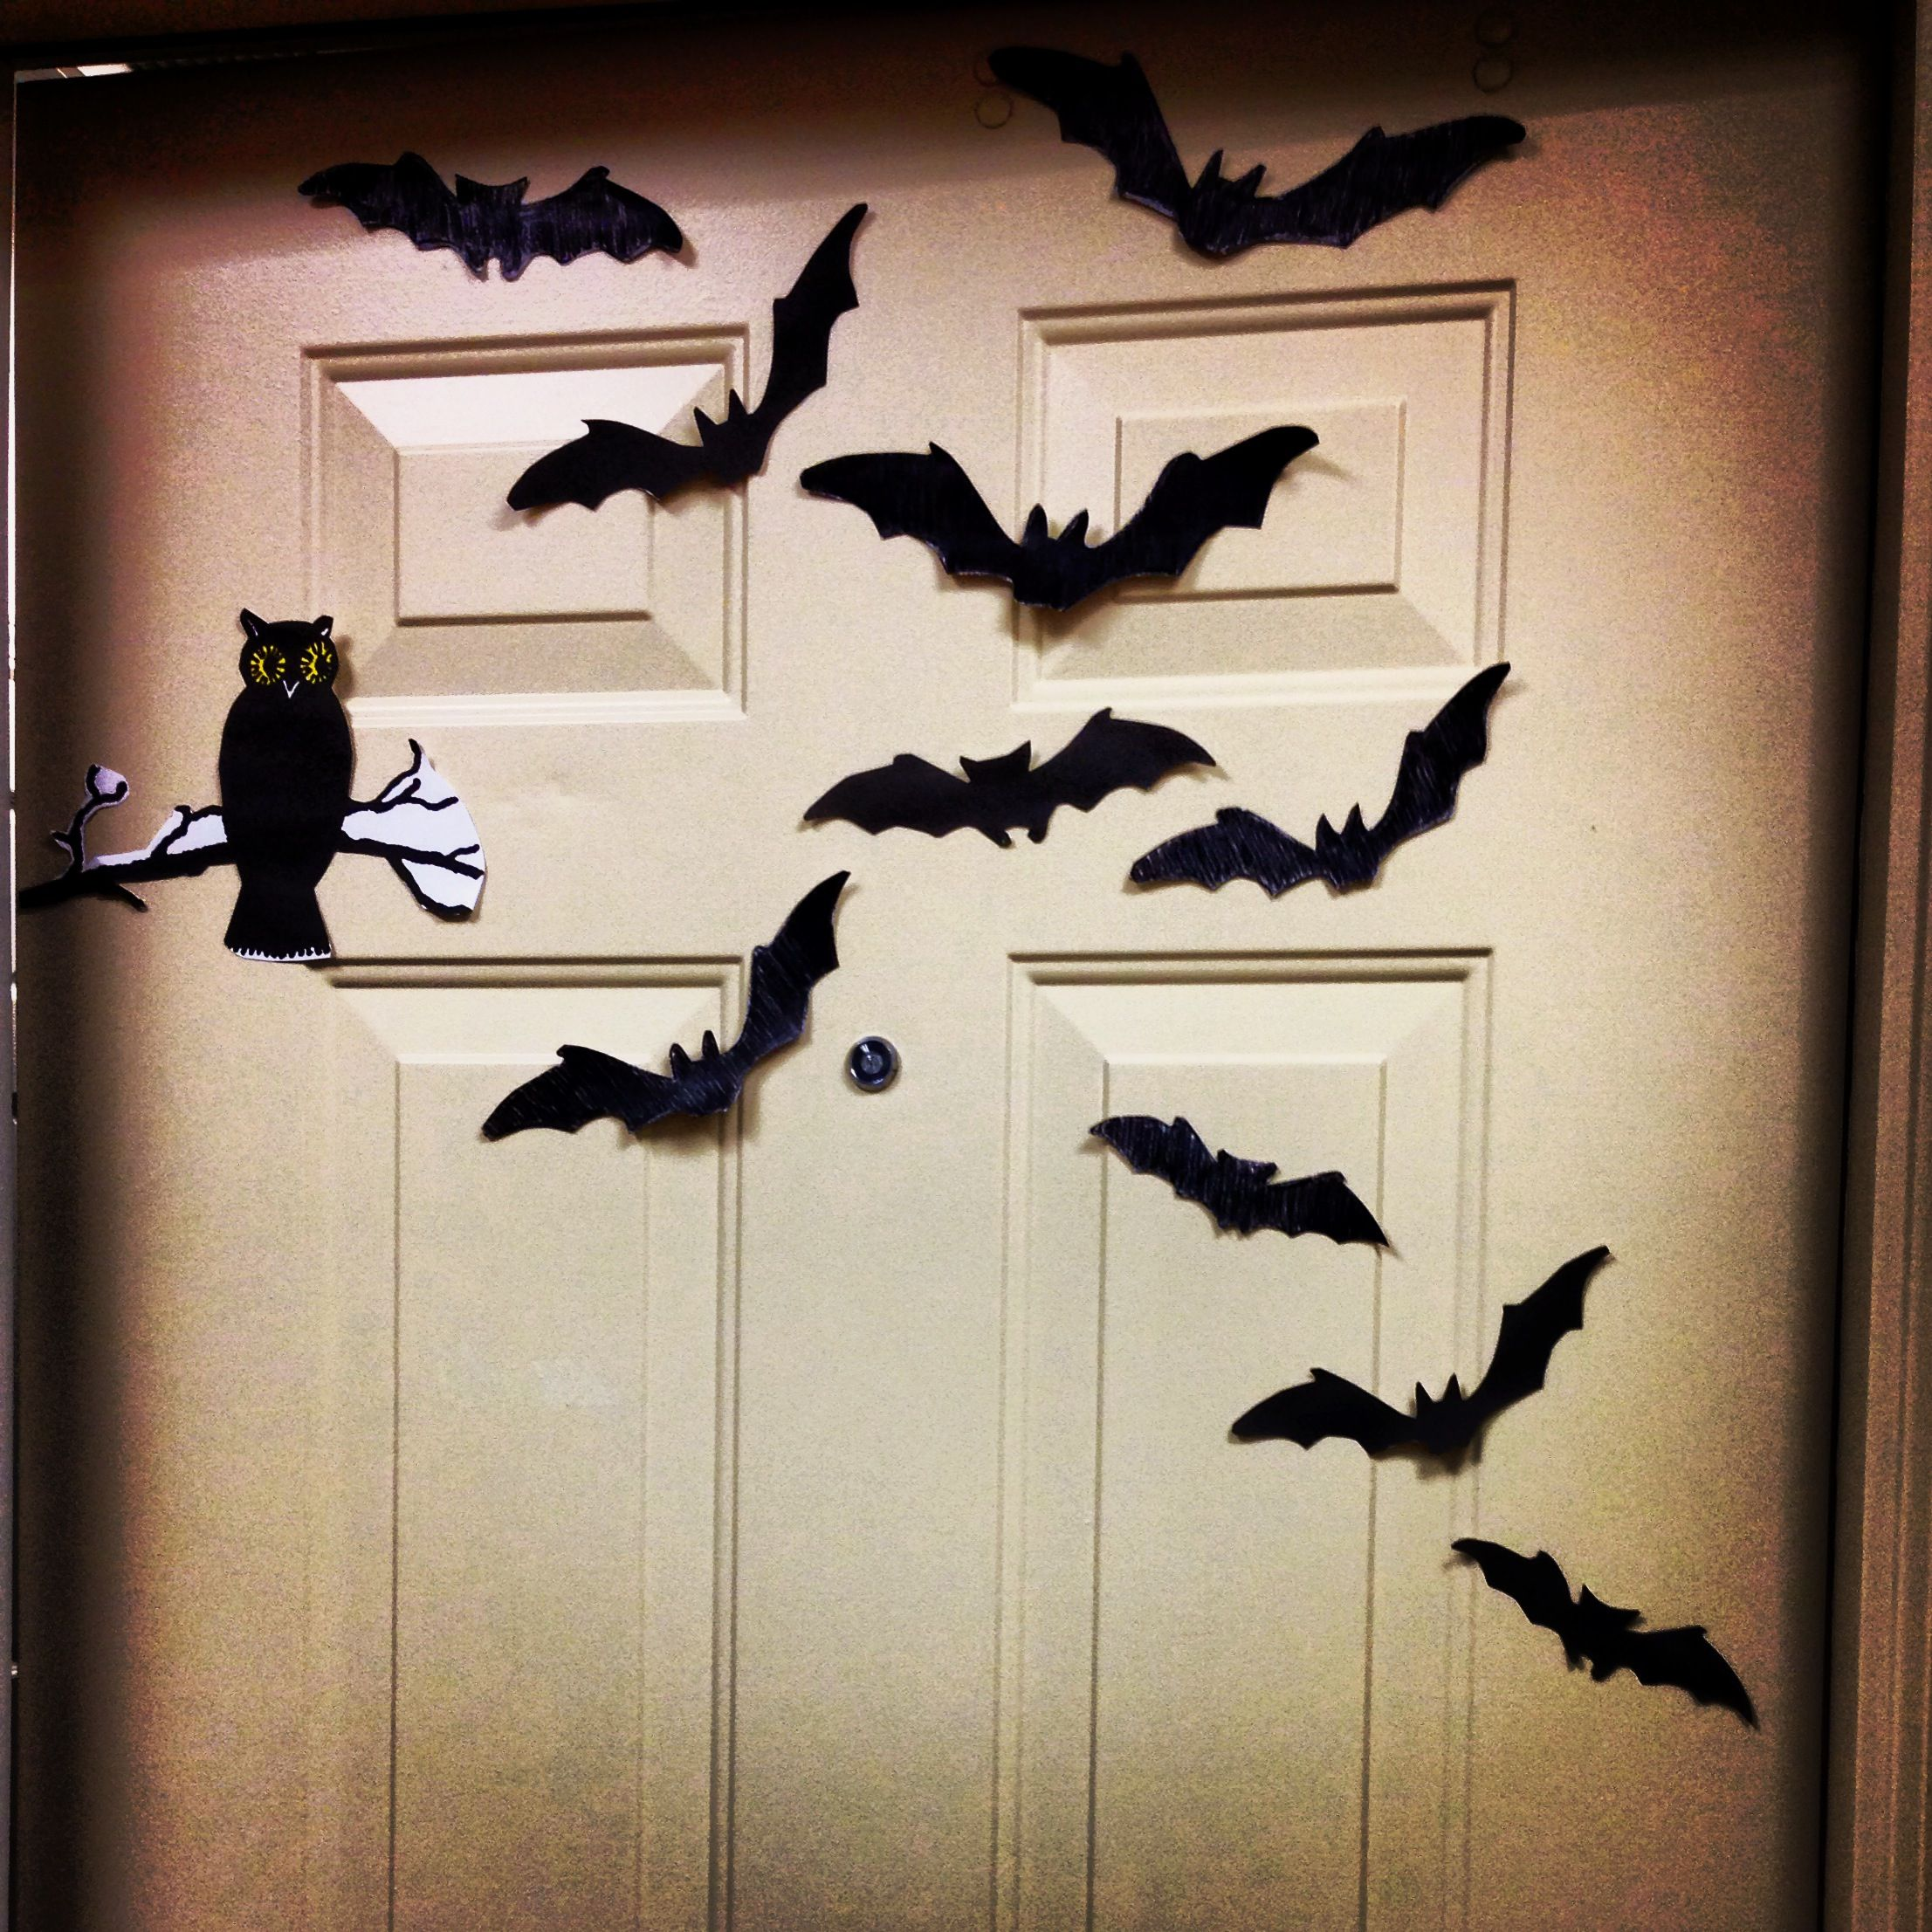 Halloween dorm door decorations - Halloween Dorm Door Decorations